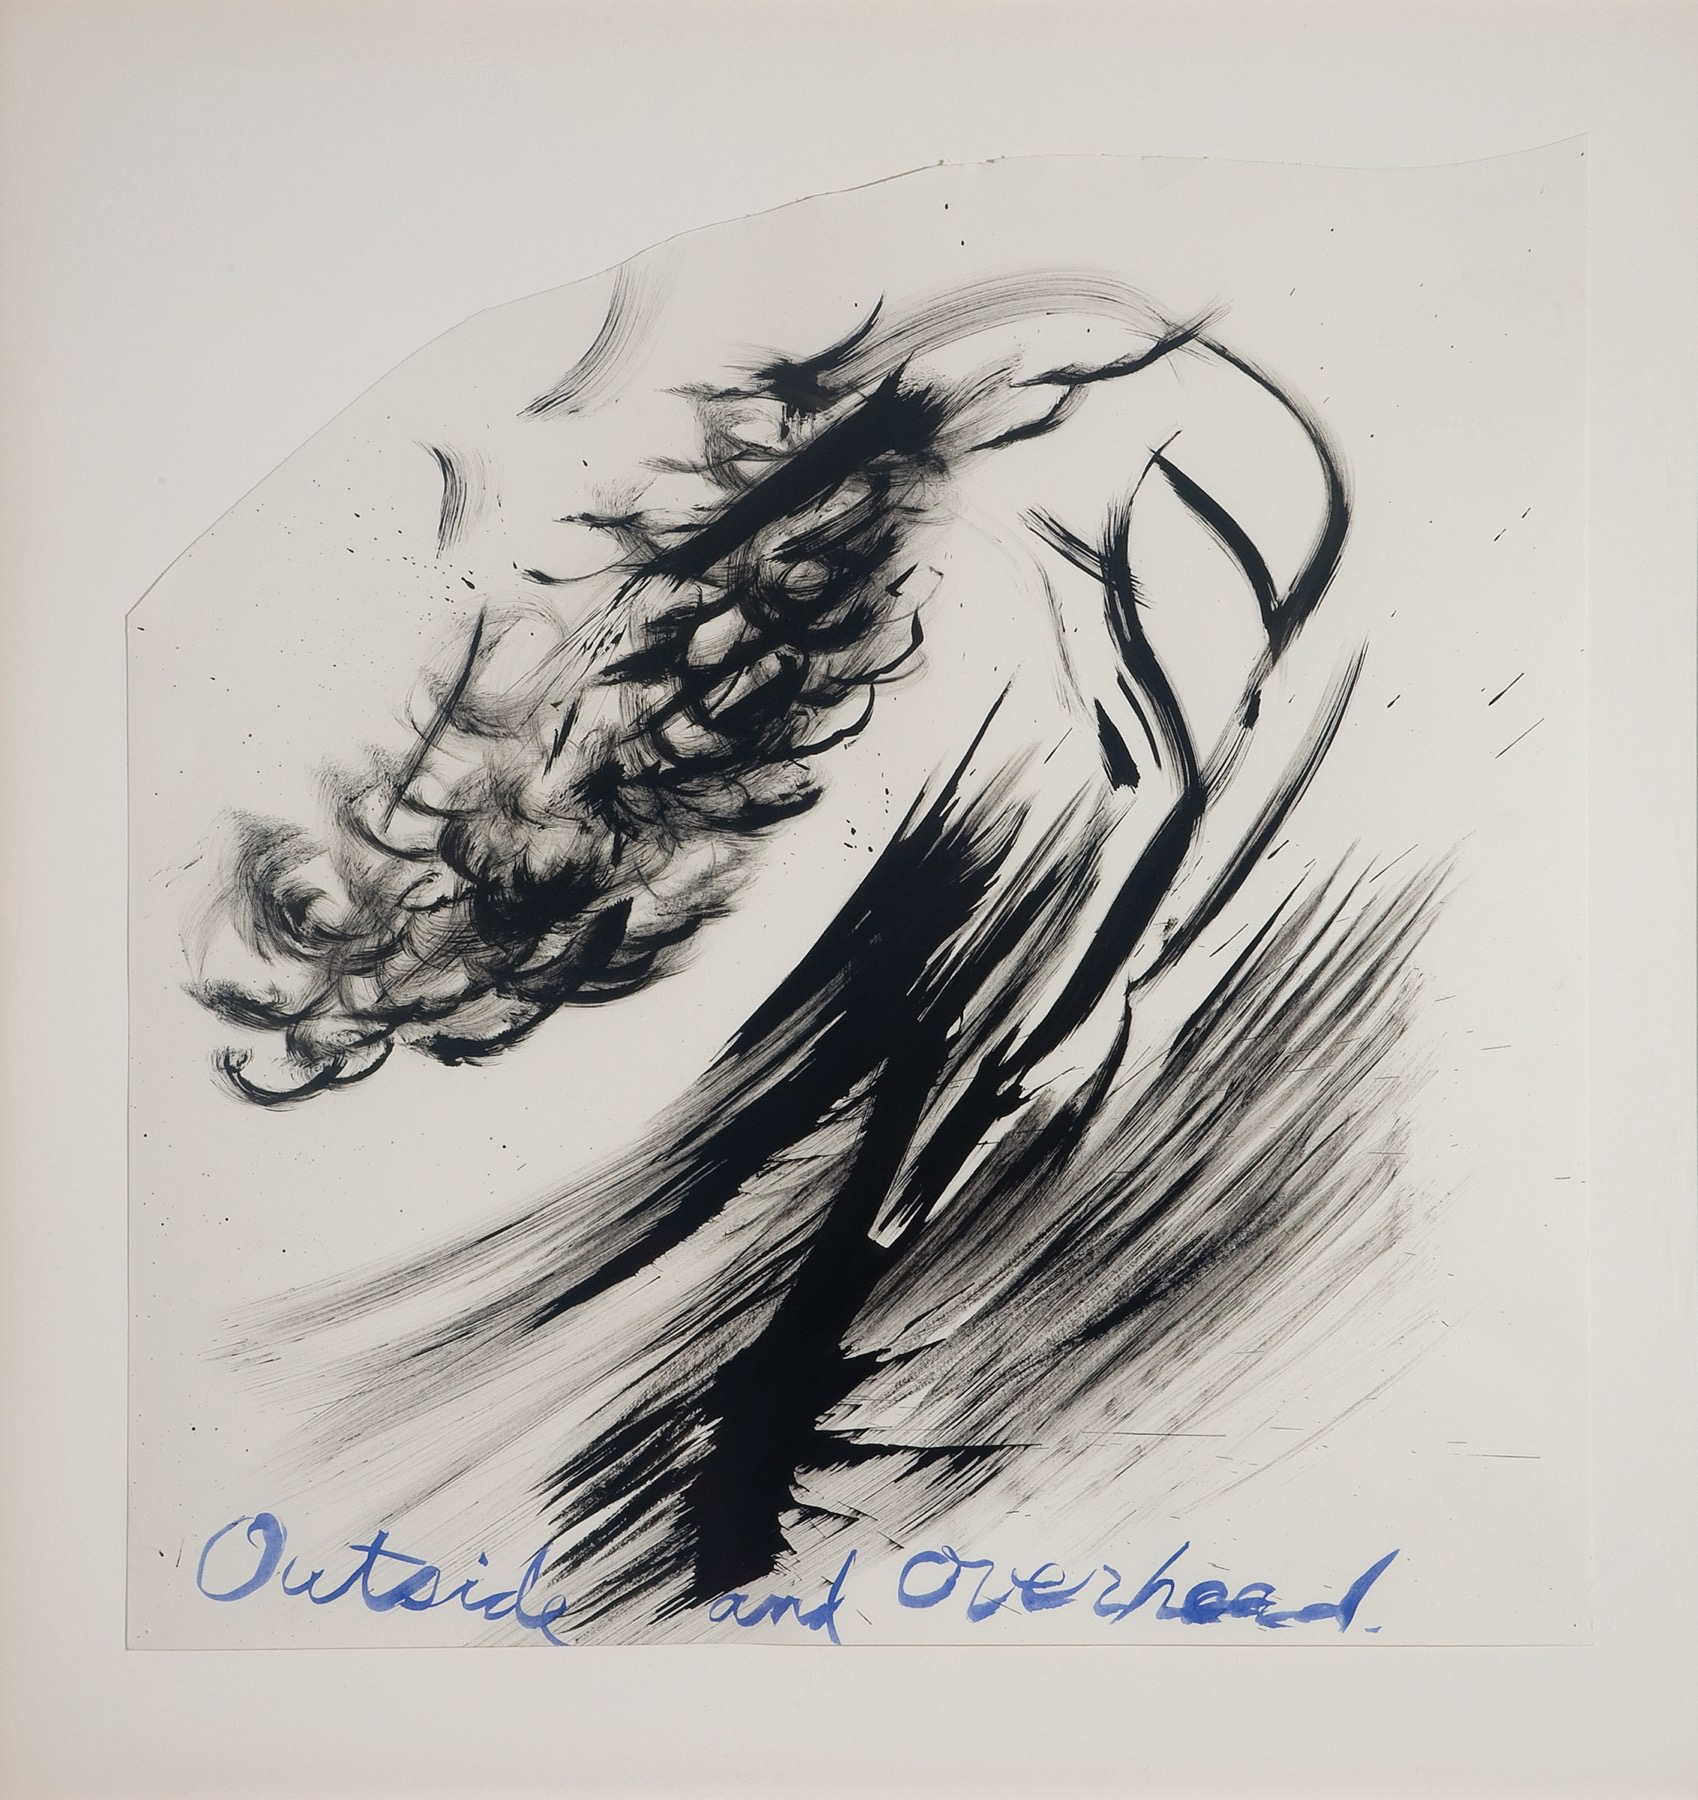 Image of Raymond Pettibon, Untitled (Outside and Overheard), 2003